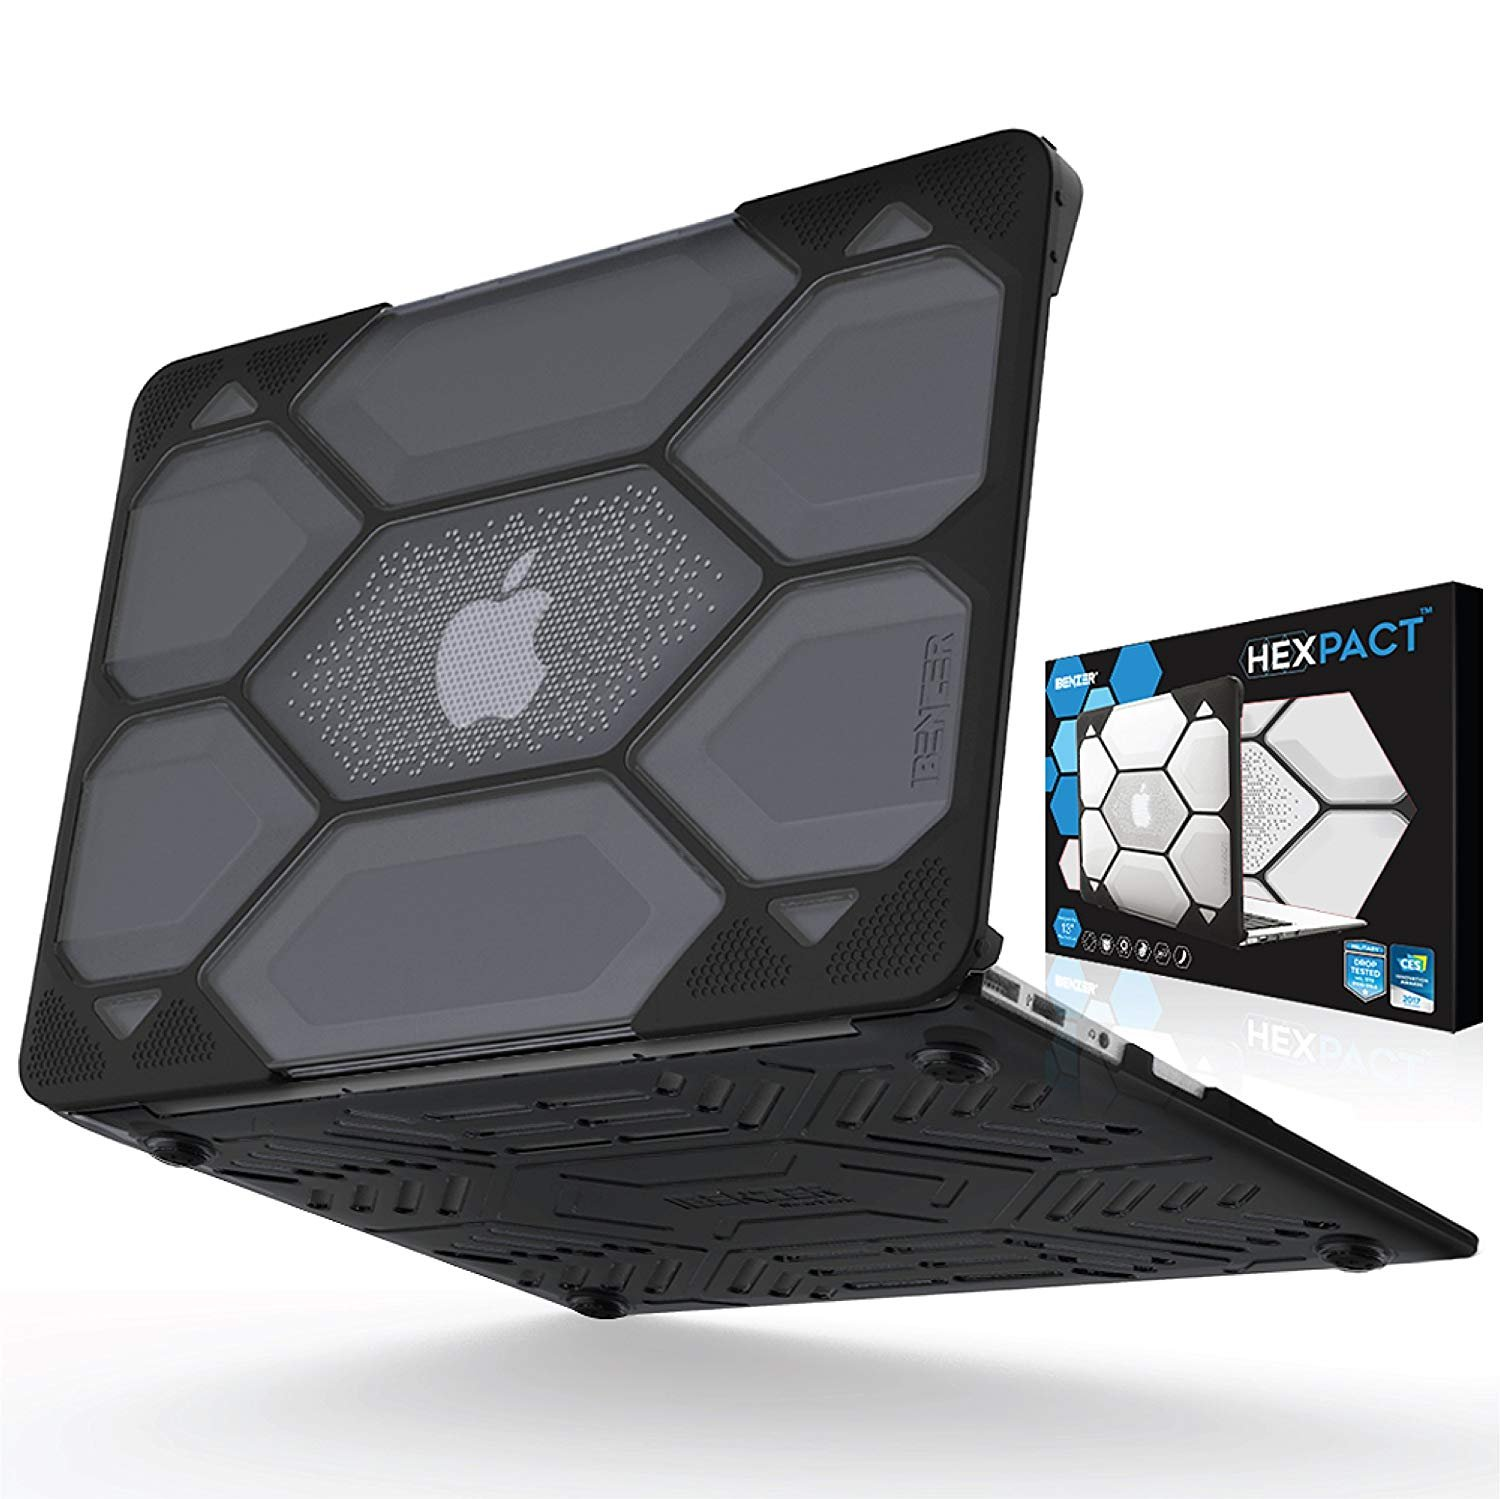 IBENZER Hexpact Heavy Duty Protective Case for MacBook Air 13 Inch A1369/A1466, Black, LC-HPE-A13CYBK